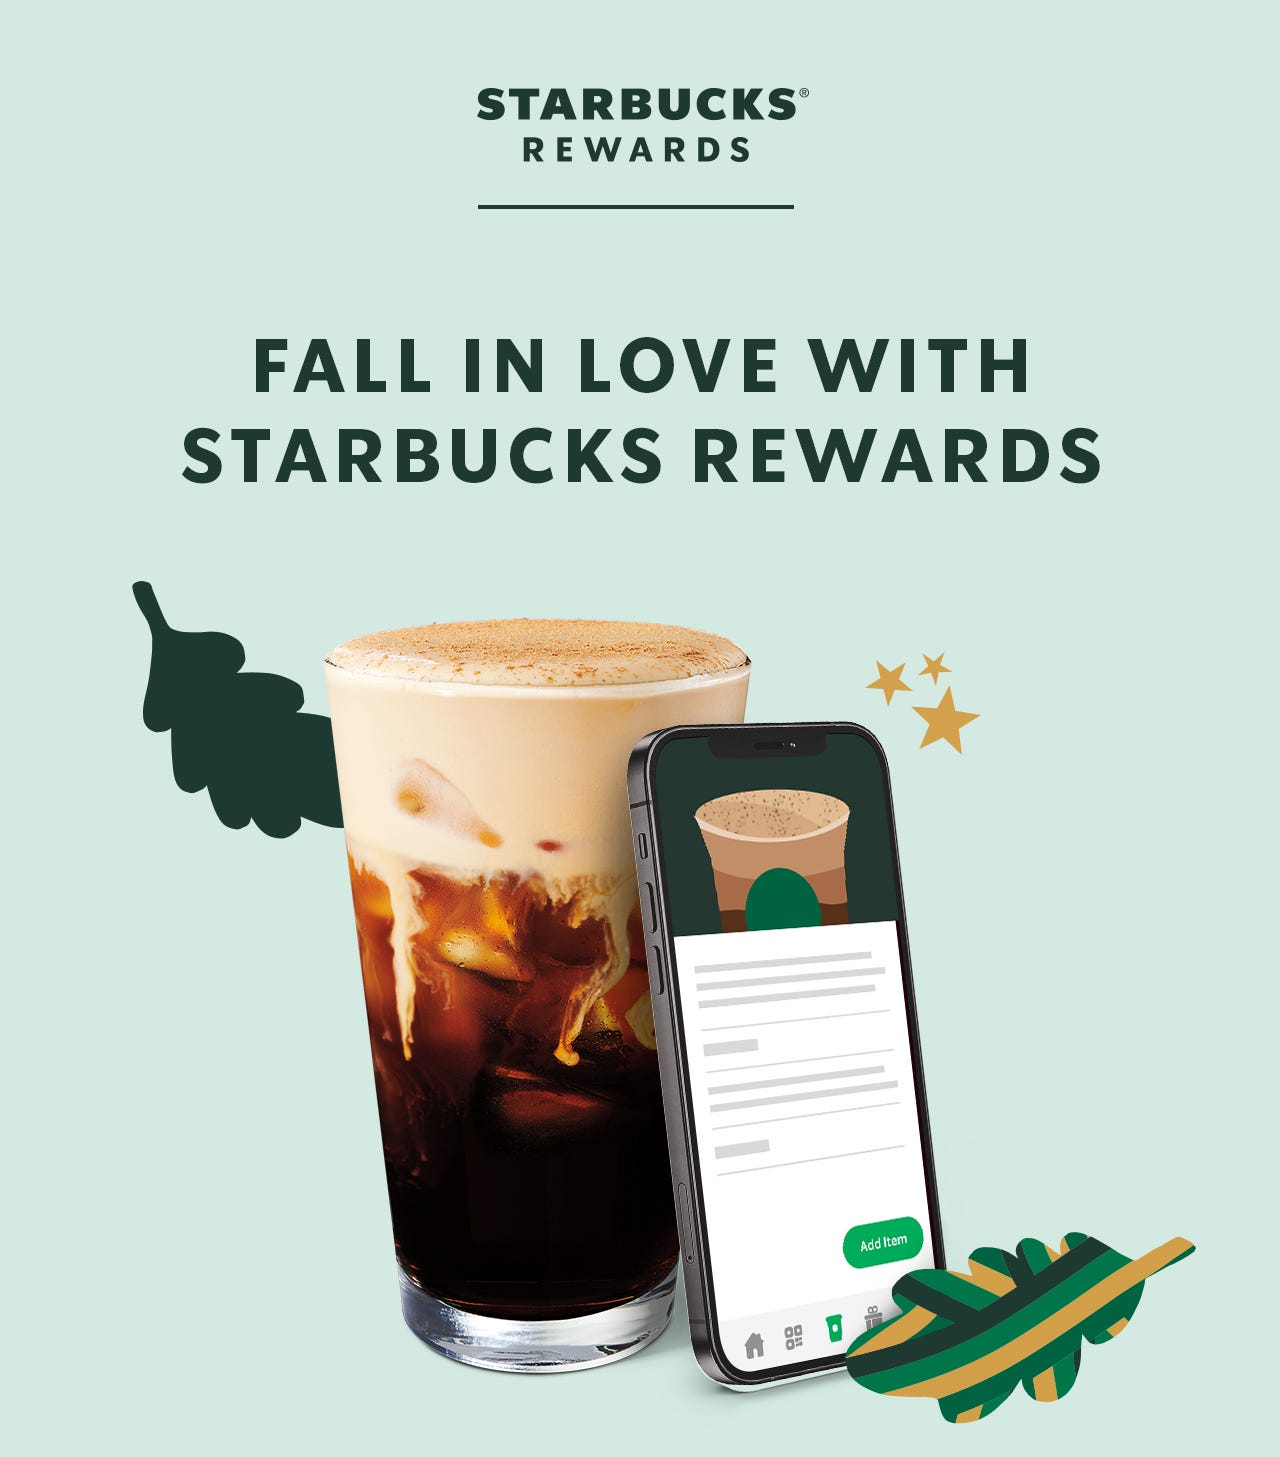 Starbucks has a deal for the first day of fall. Here's how to earn a free drink Wednesday